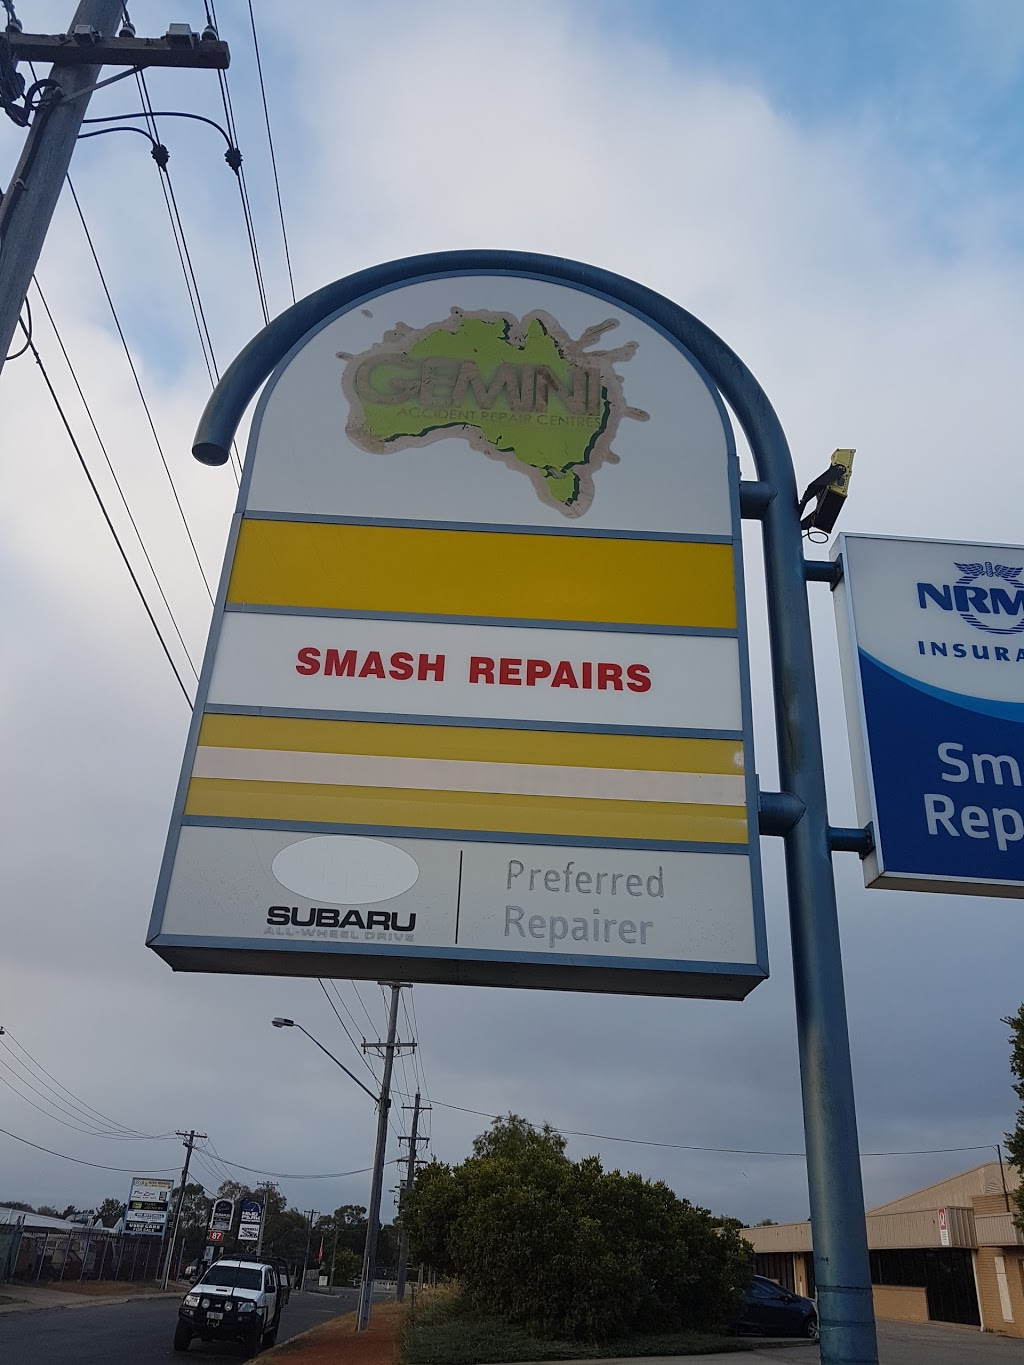 Gemini Accident Repair Center | car repair | 74 Grimwade St, Mitchell ACT 2911, Australia | 0262414888 OR +61 2 6241 4888